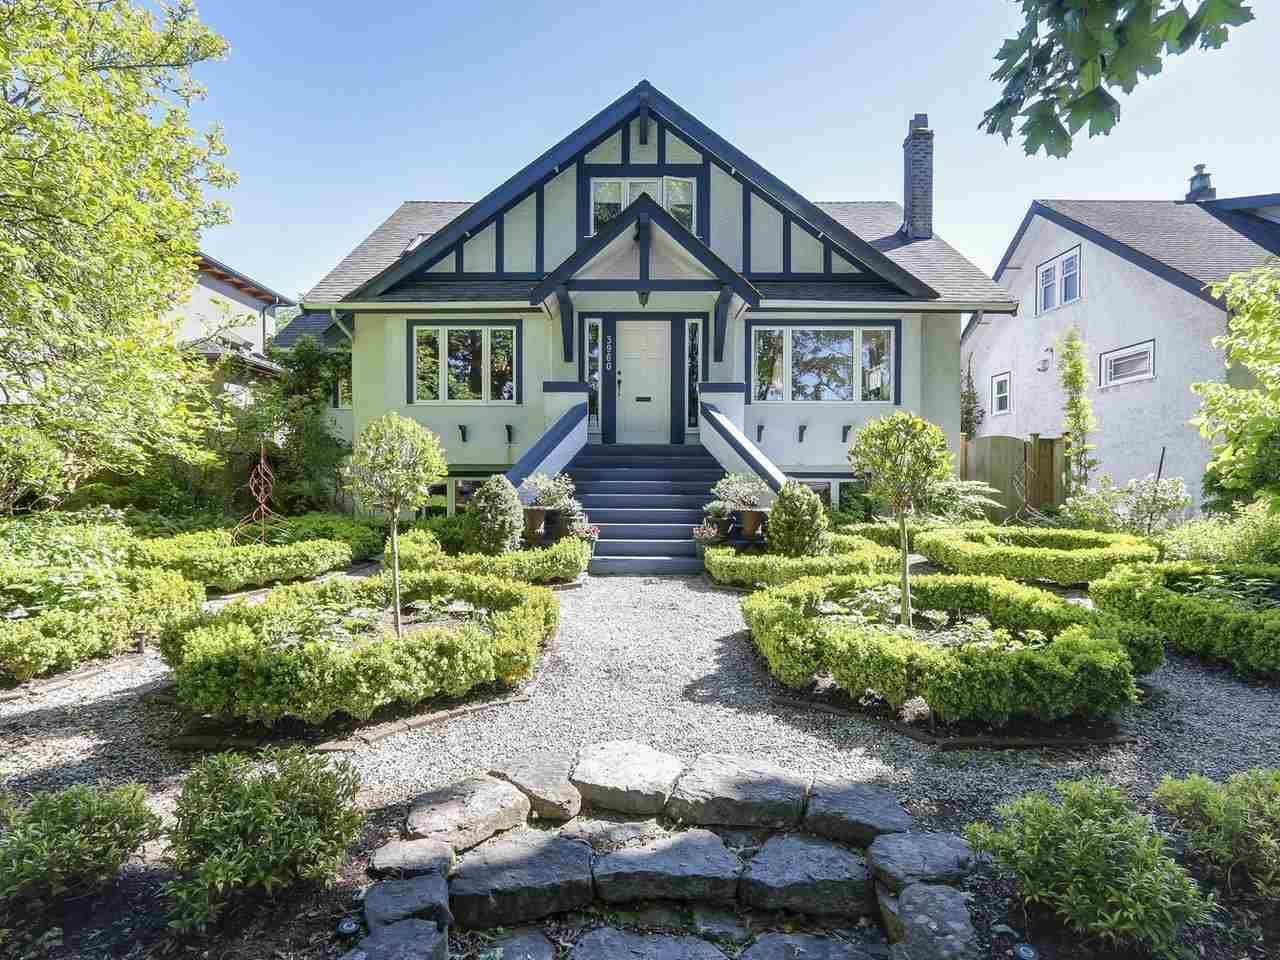 Main Photo: 3960 W 13TH Avenue in Vancouver: Point Grey House for sale (Vancouver West)  : MLS®# R2211924